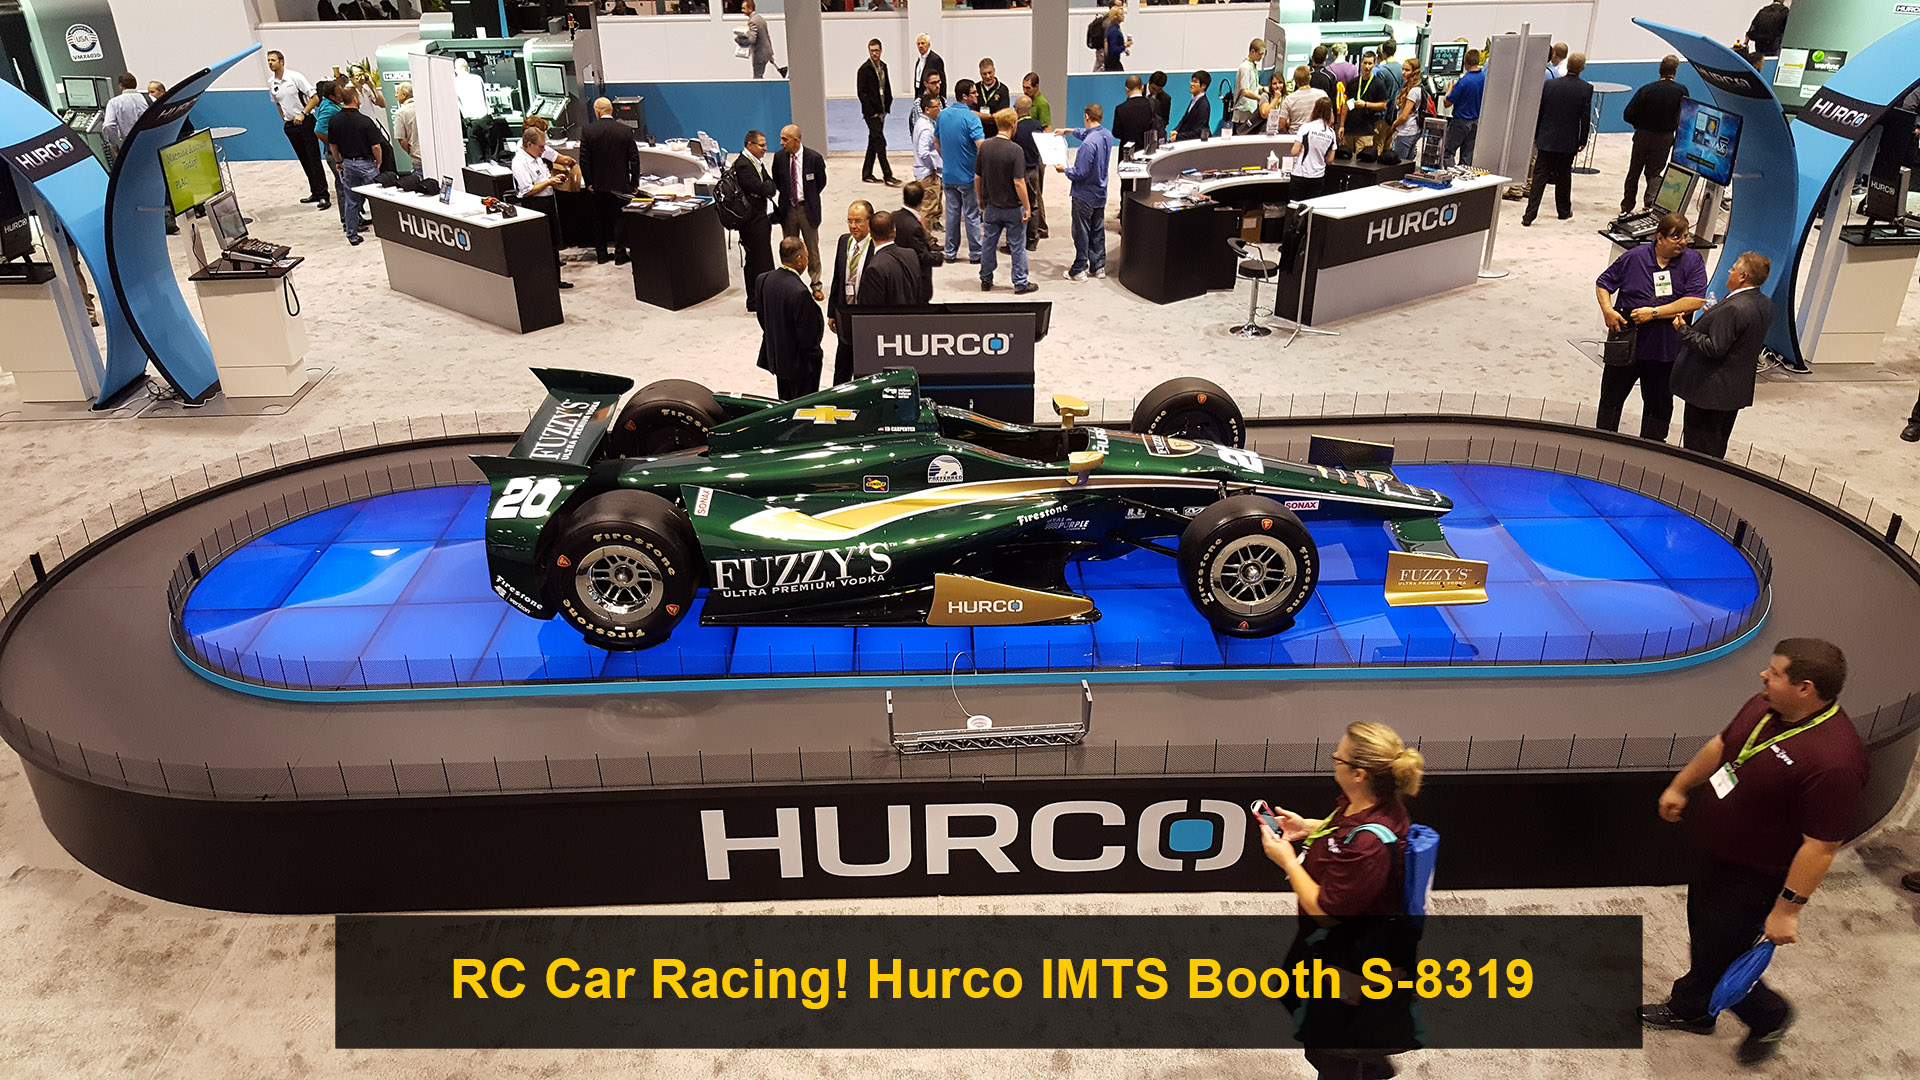 Hurco-rc-car-racing.jpg